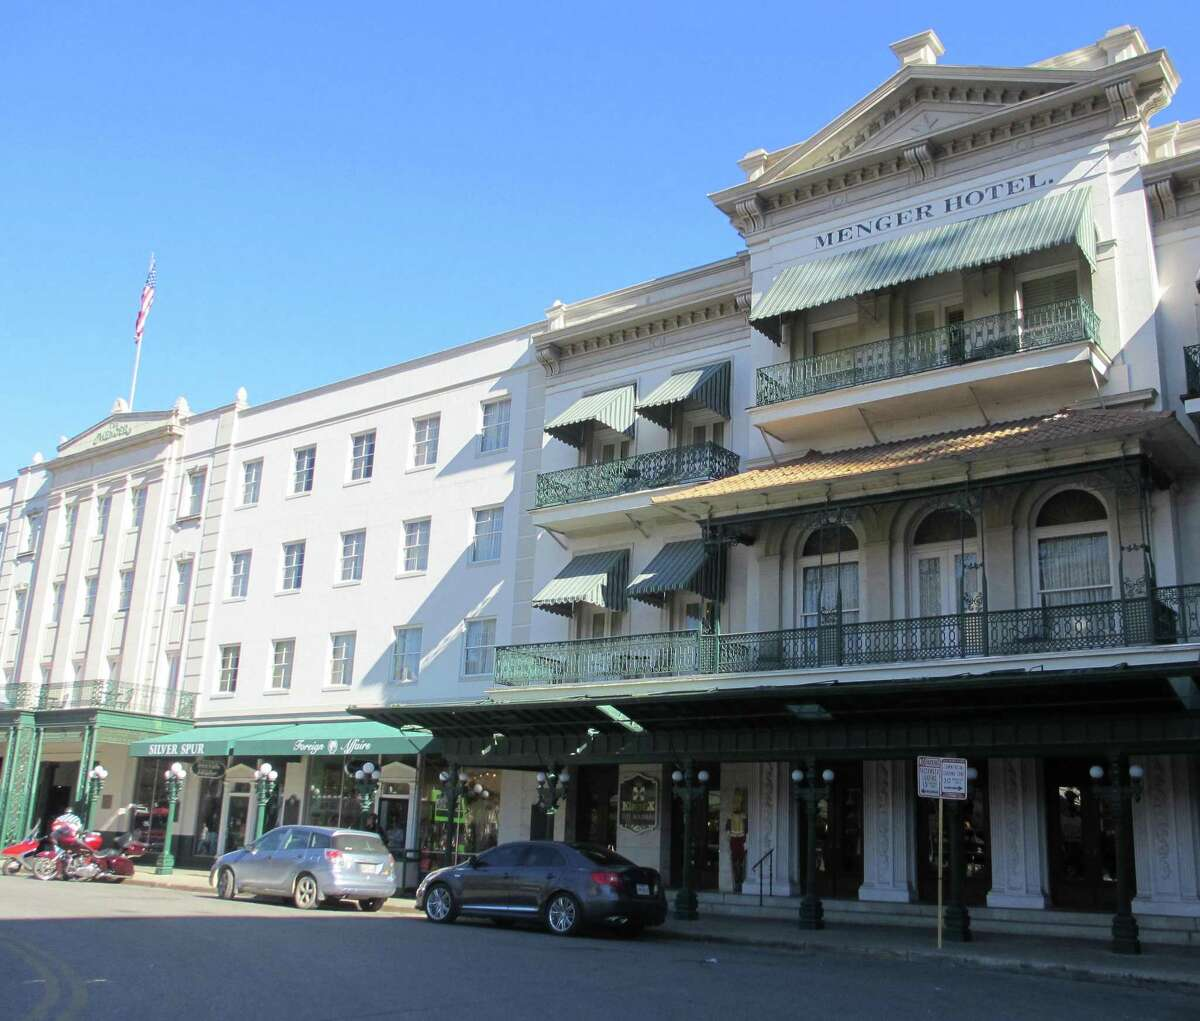 Open since 1859, the Menger Hotel is perhaps the most famously haunted place in San Antonio, with no fewer than 32 known spirits.